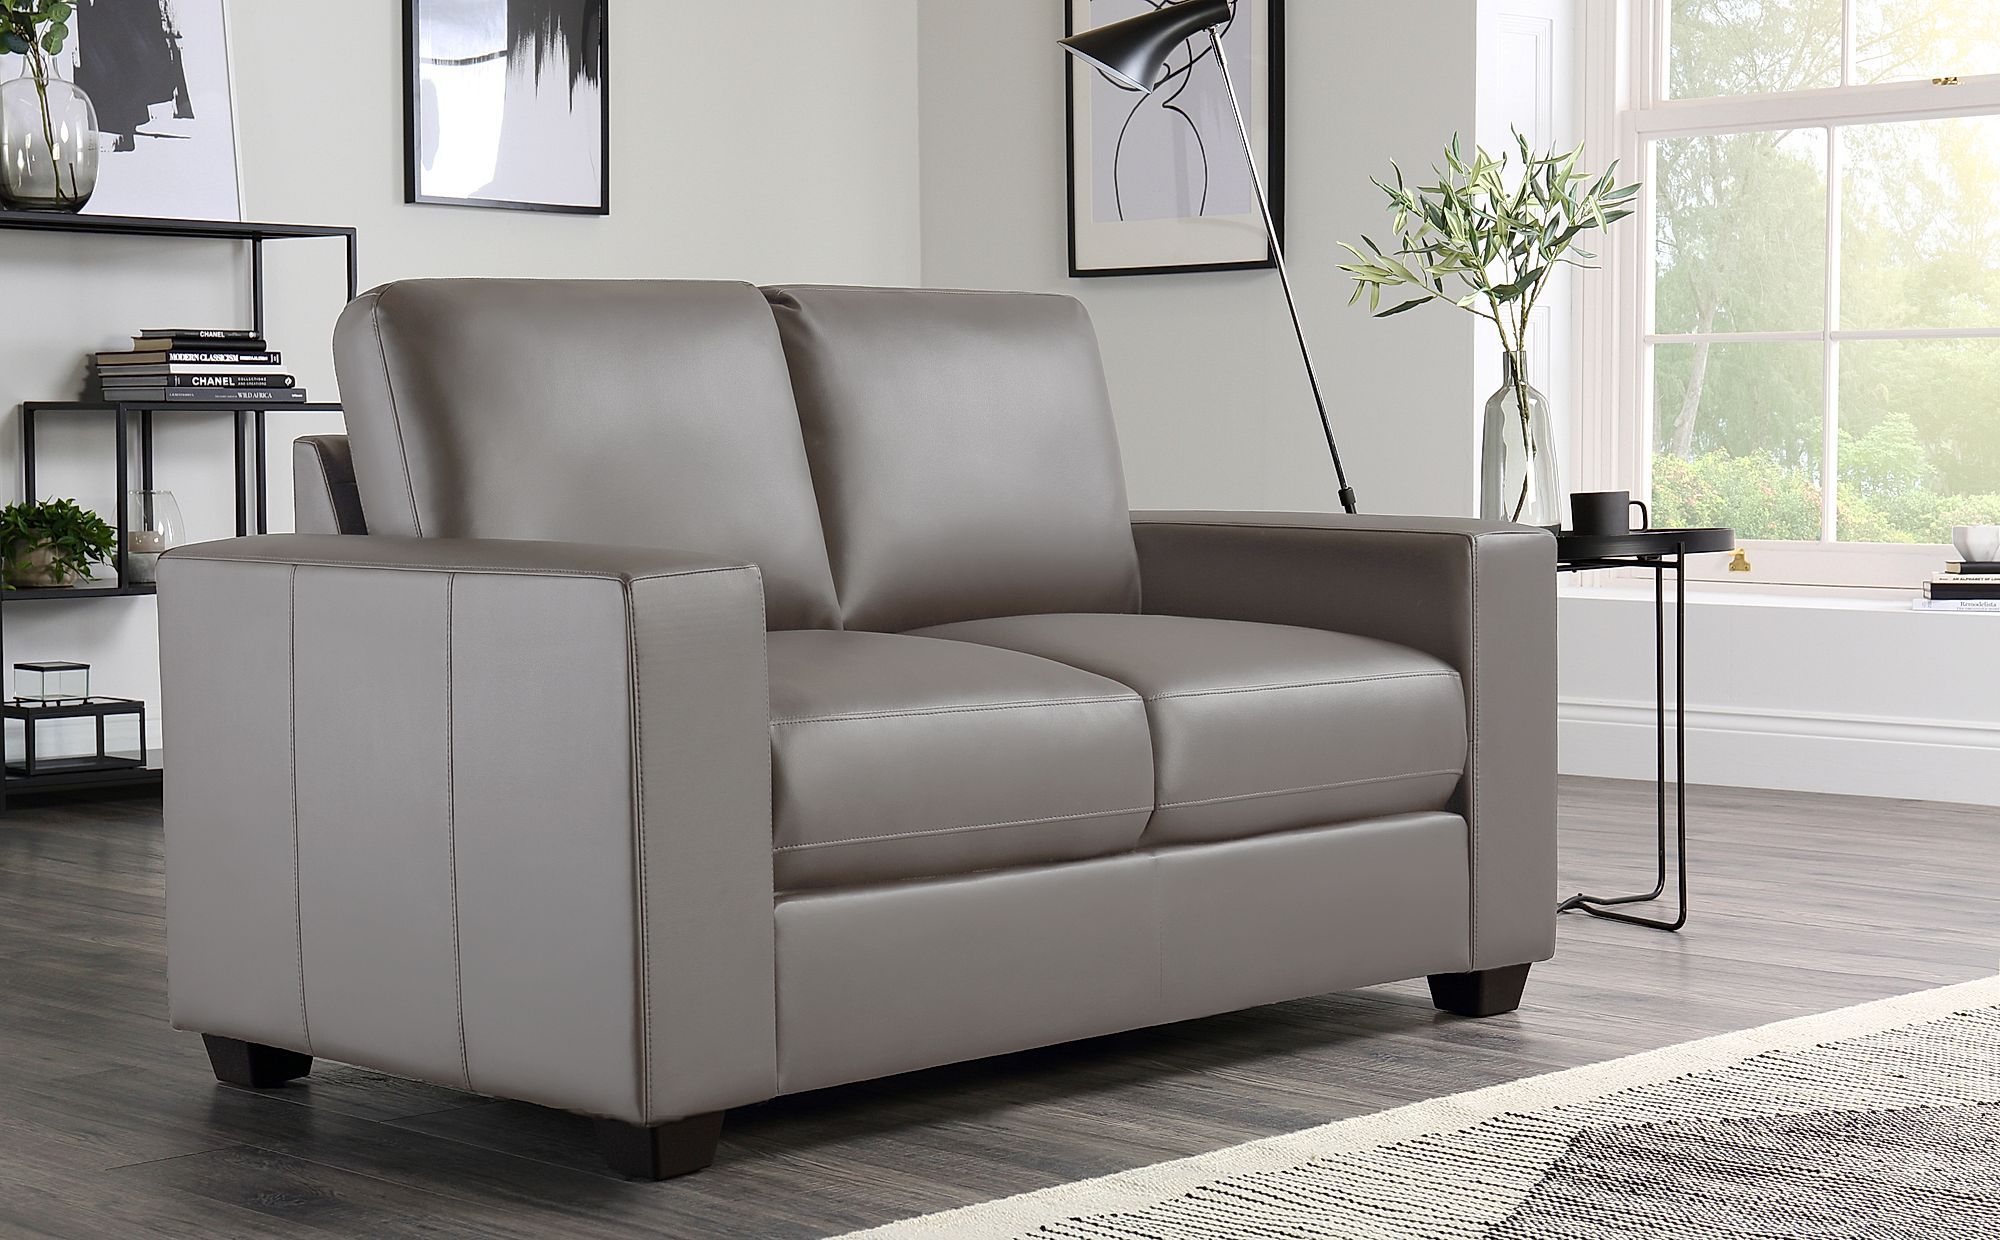 Mission Taupe Leather Sofa 3 2 Seater Only 699 98 Furniture Choice